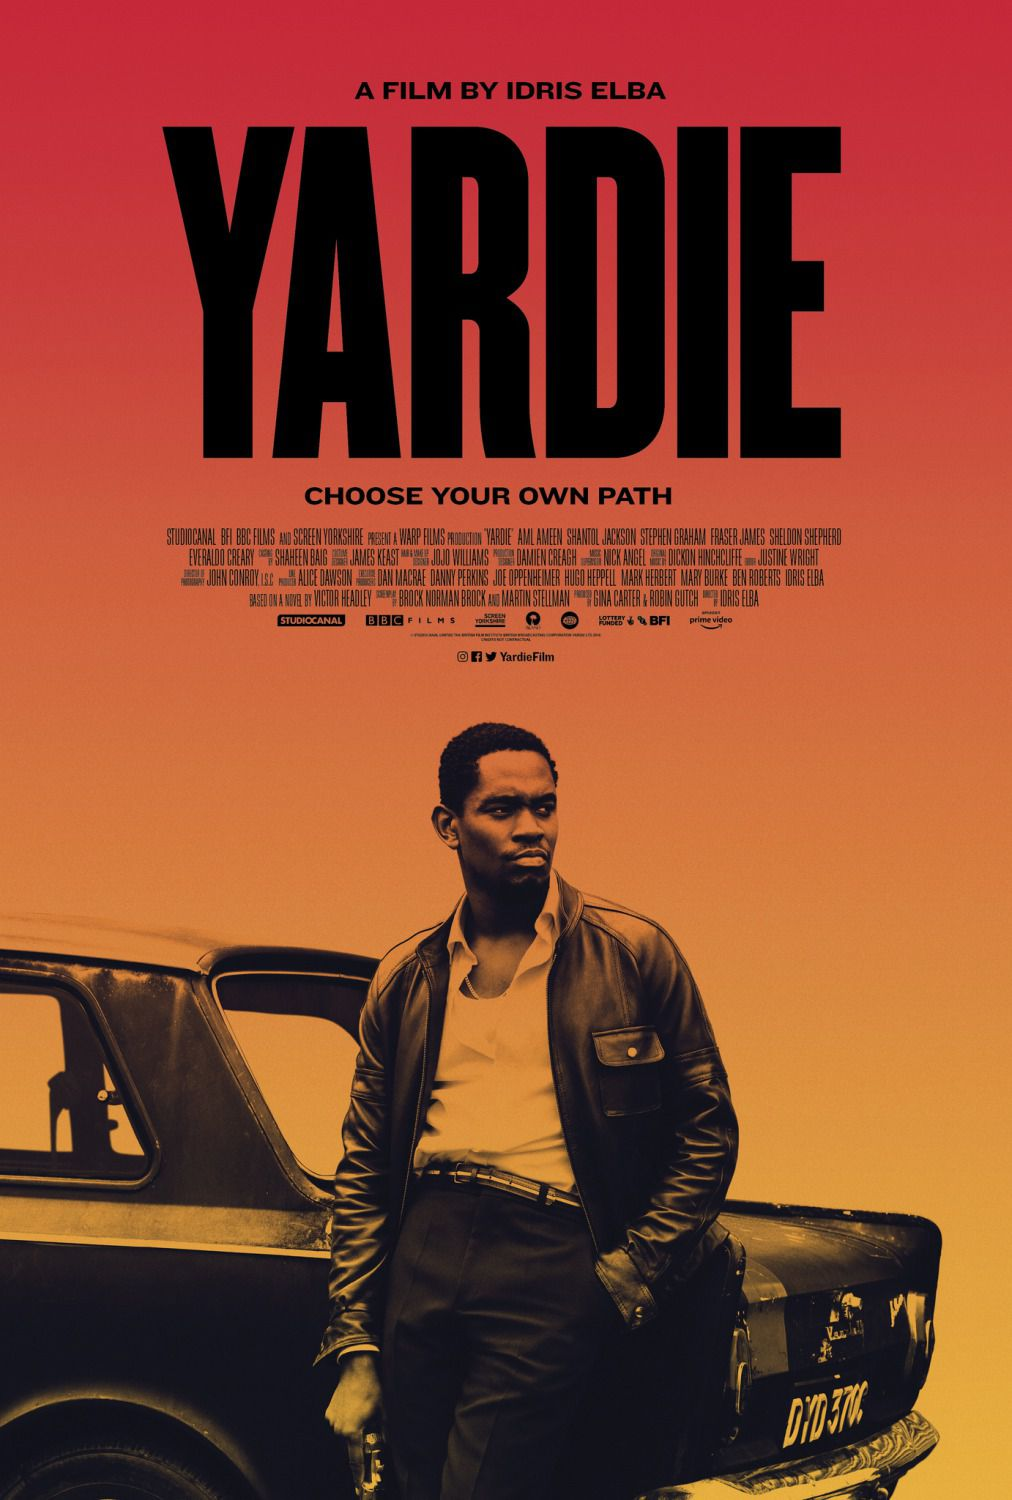 Yardie by Idris Elba - film poster 2018